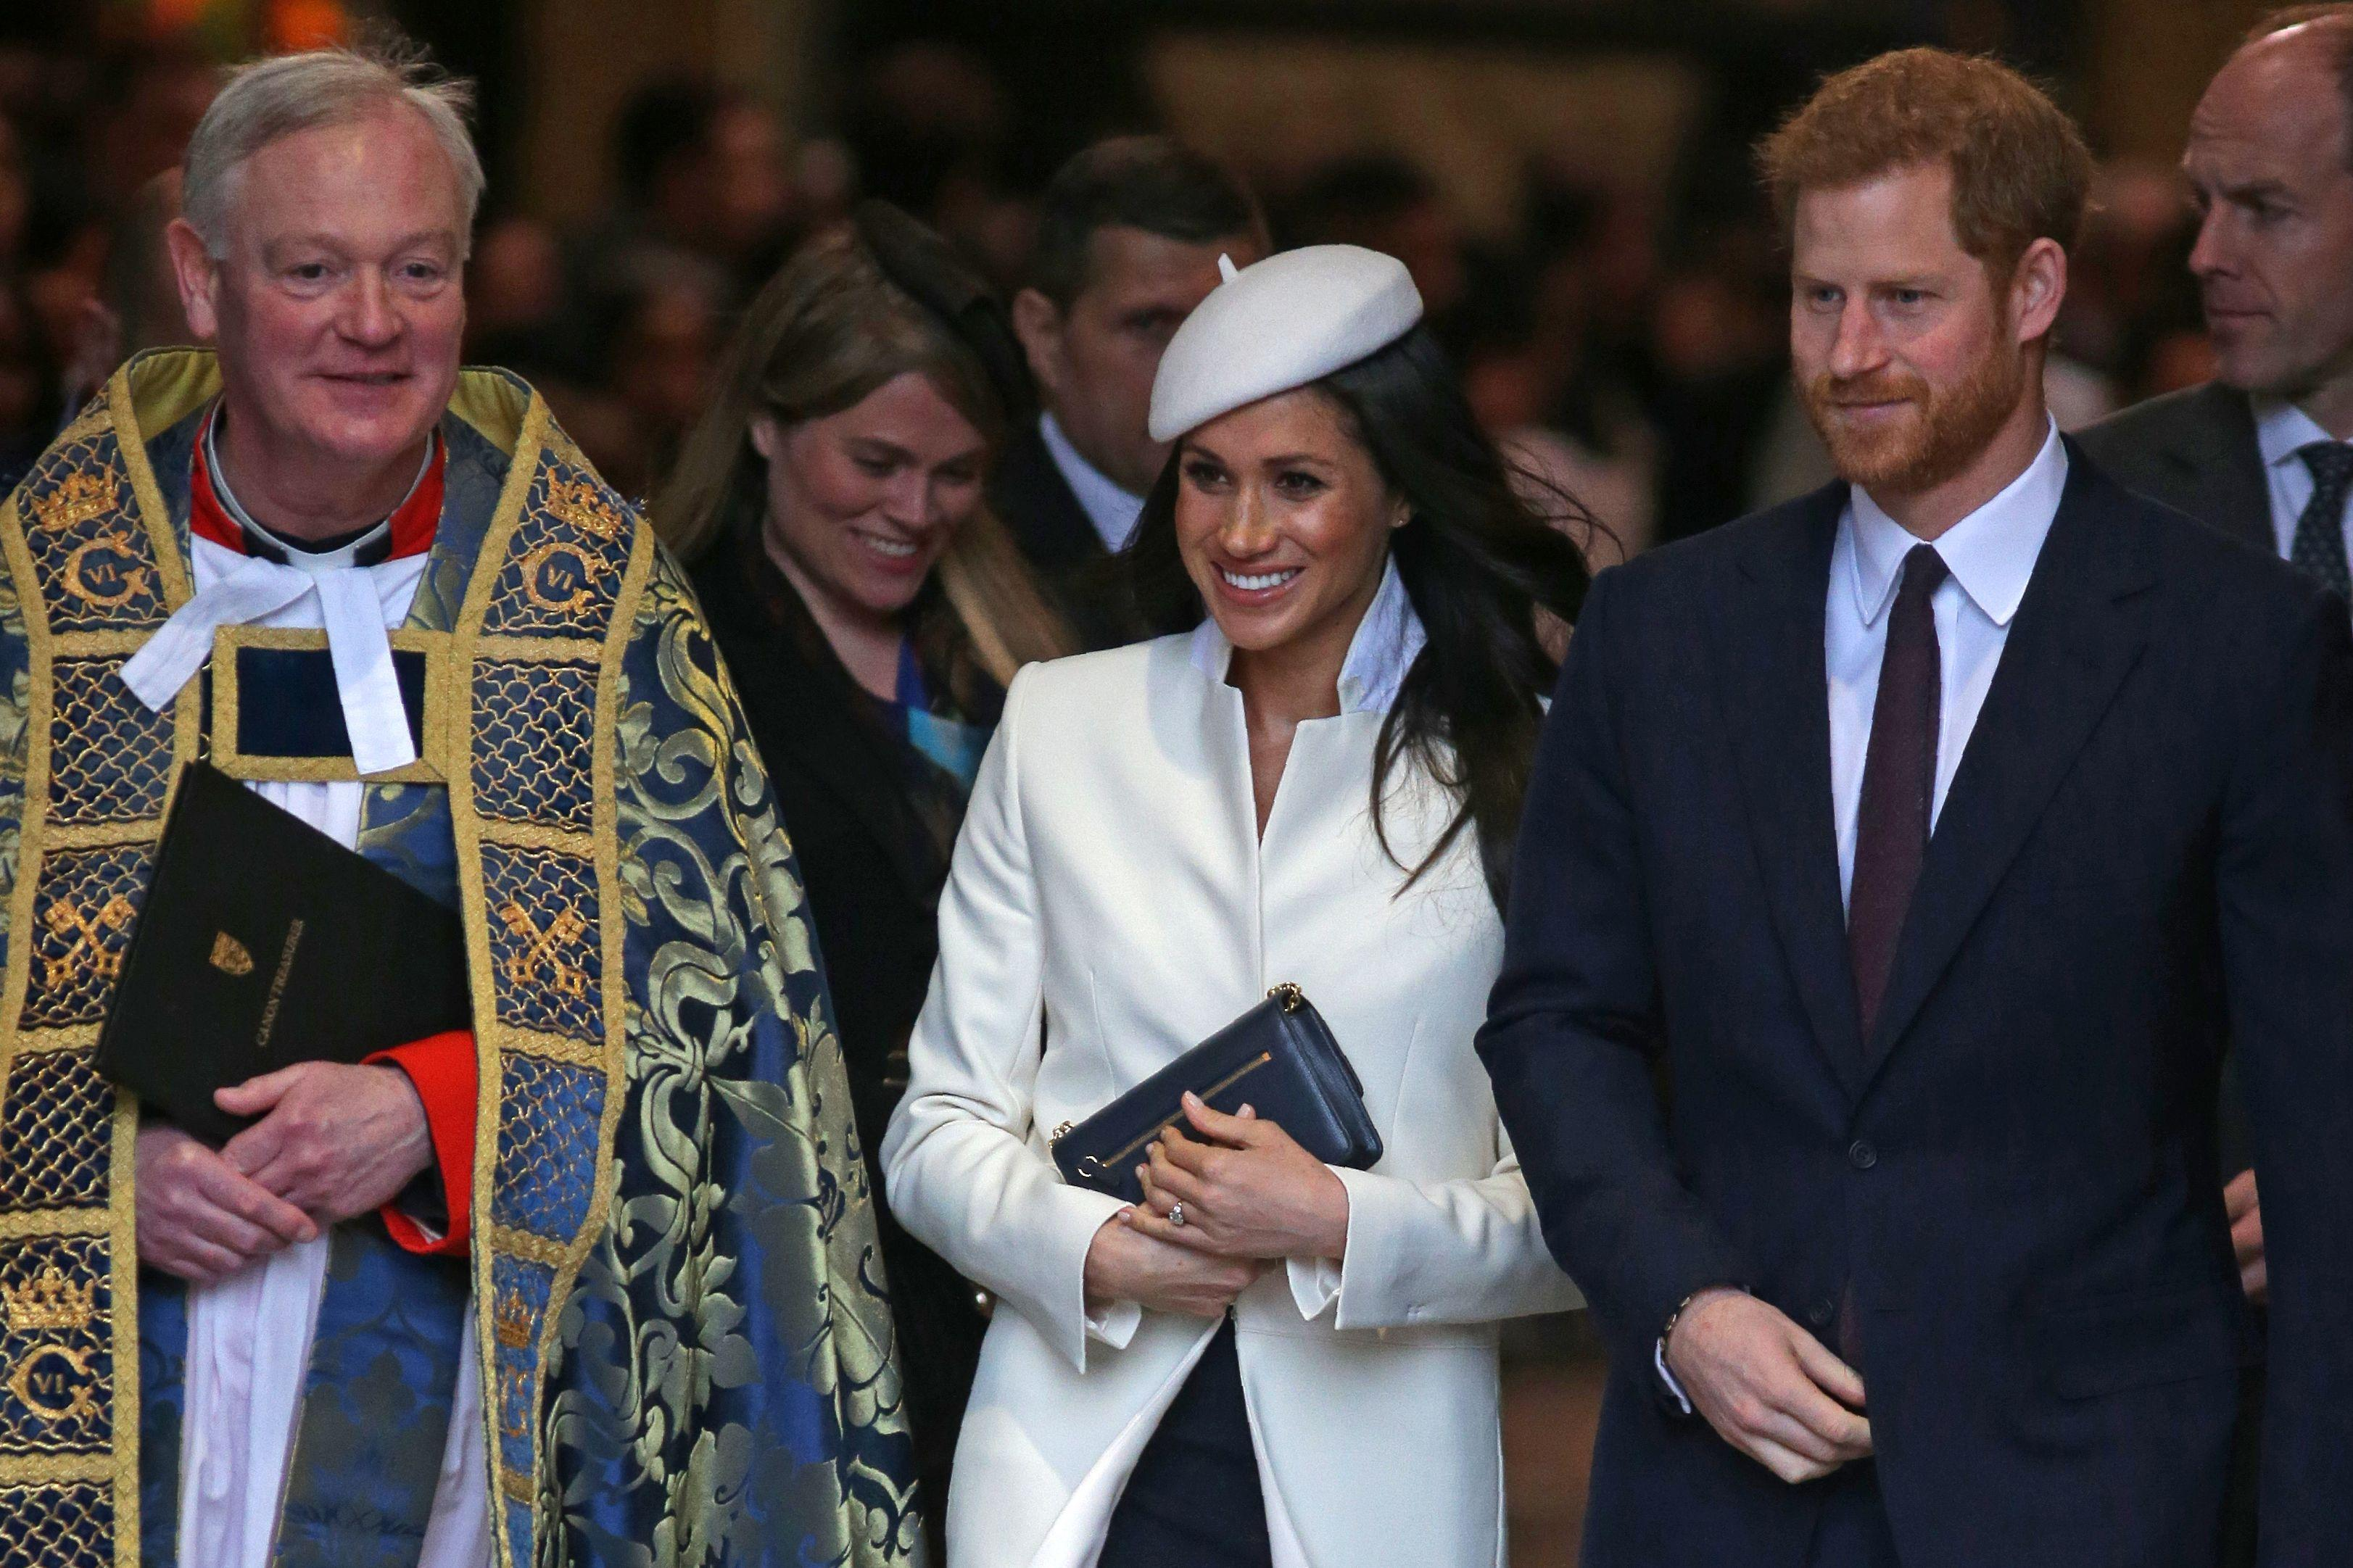 Meghan Markle Just Dropped a Hint About Her Royal Baby Plans